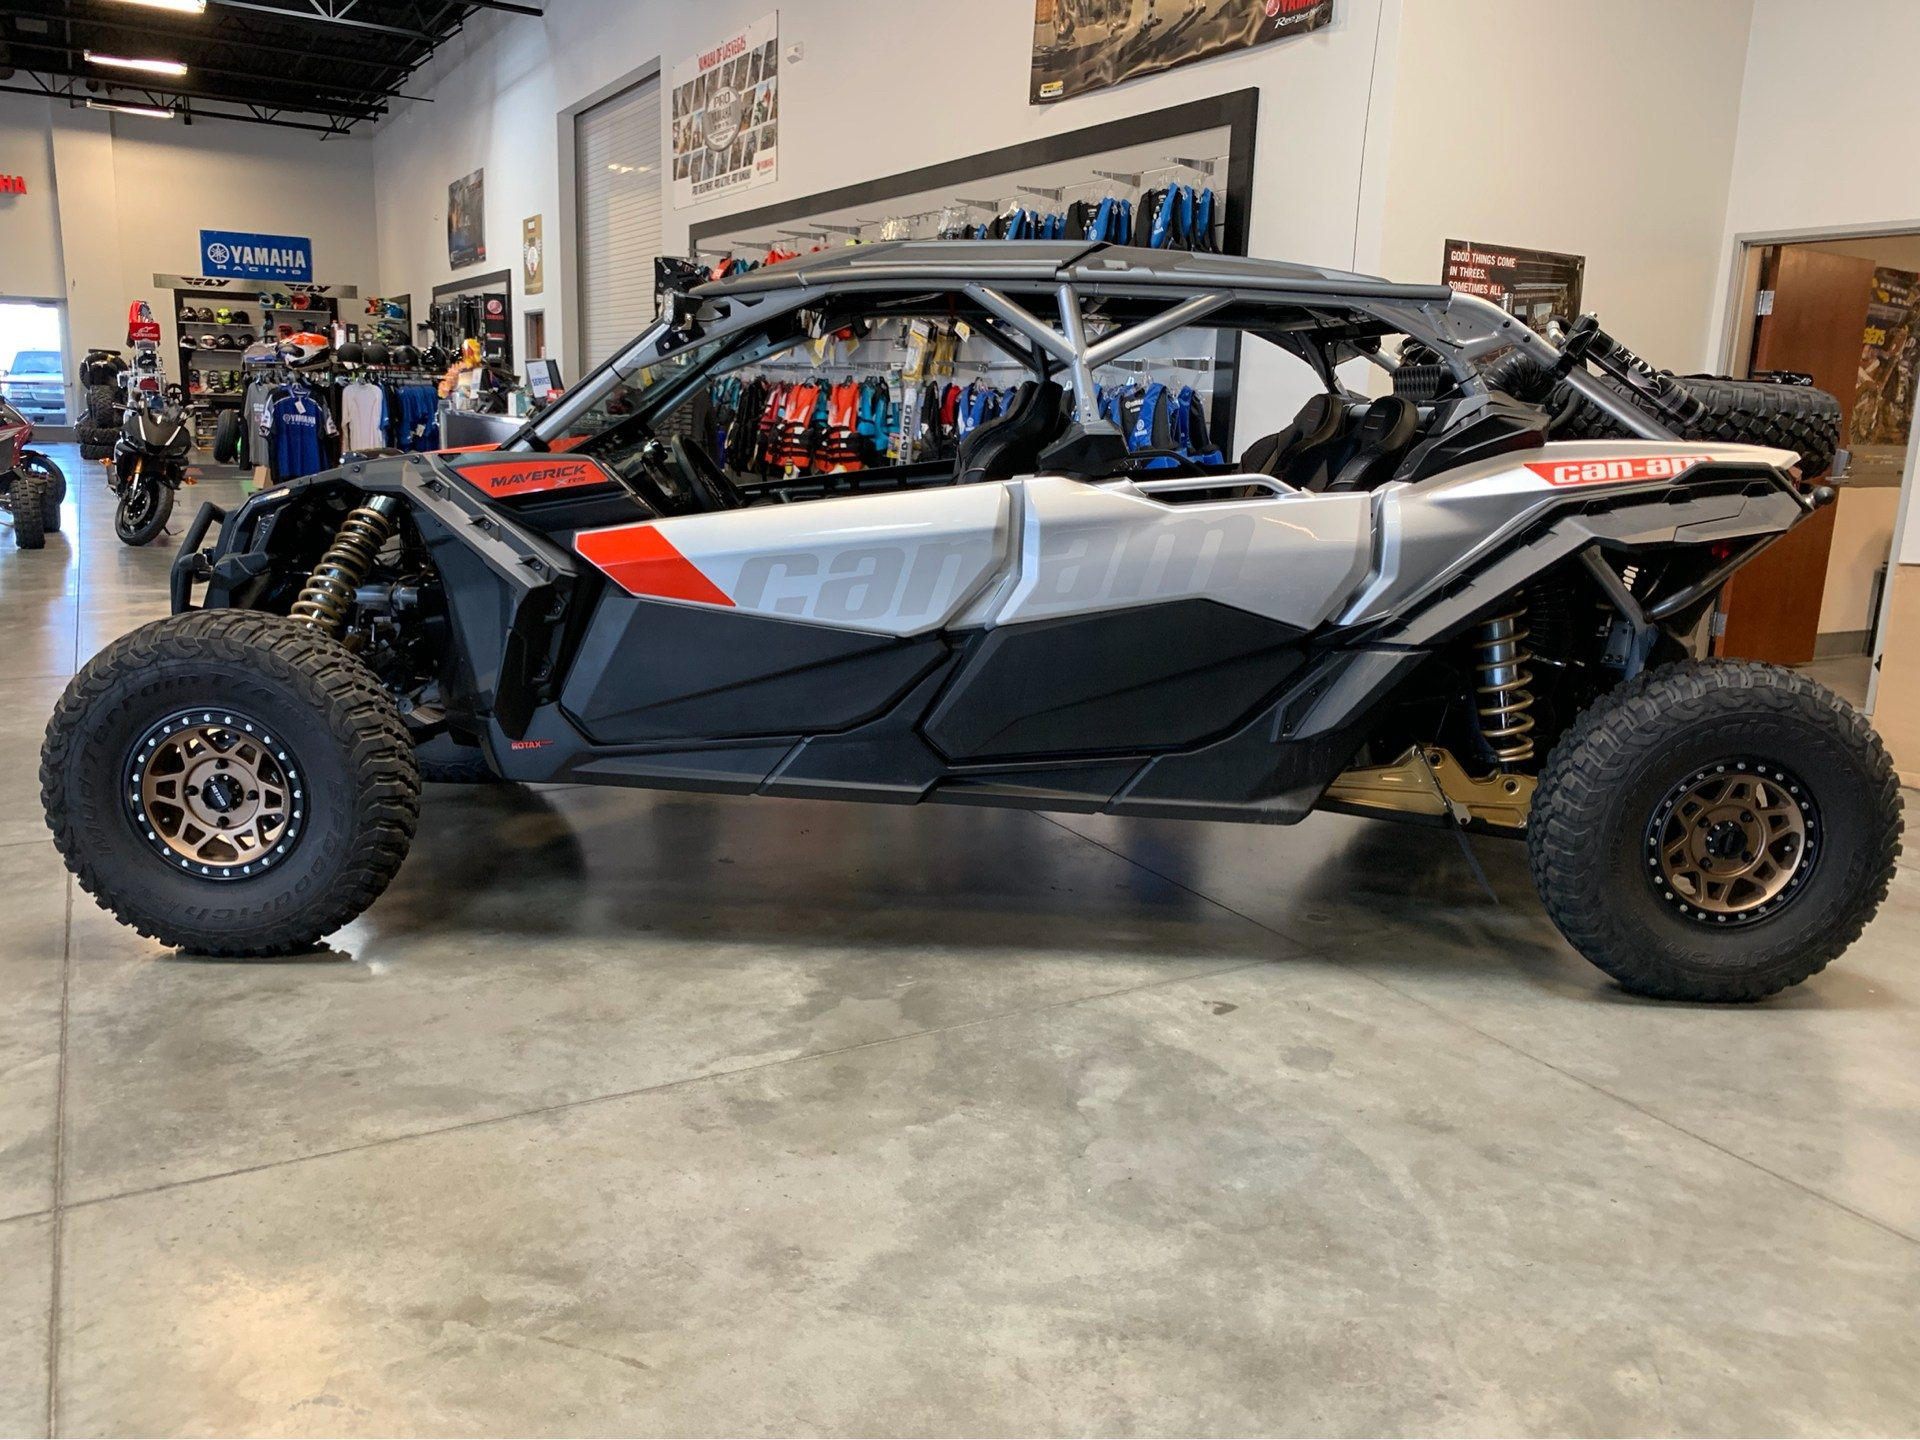 2019 Can-Am Maverick X3 Max X rs Turbo R for sale 4602